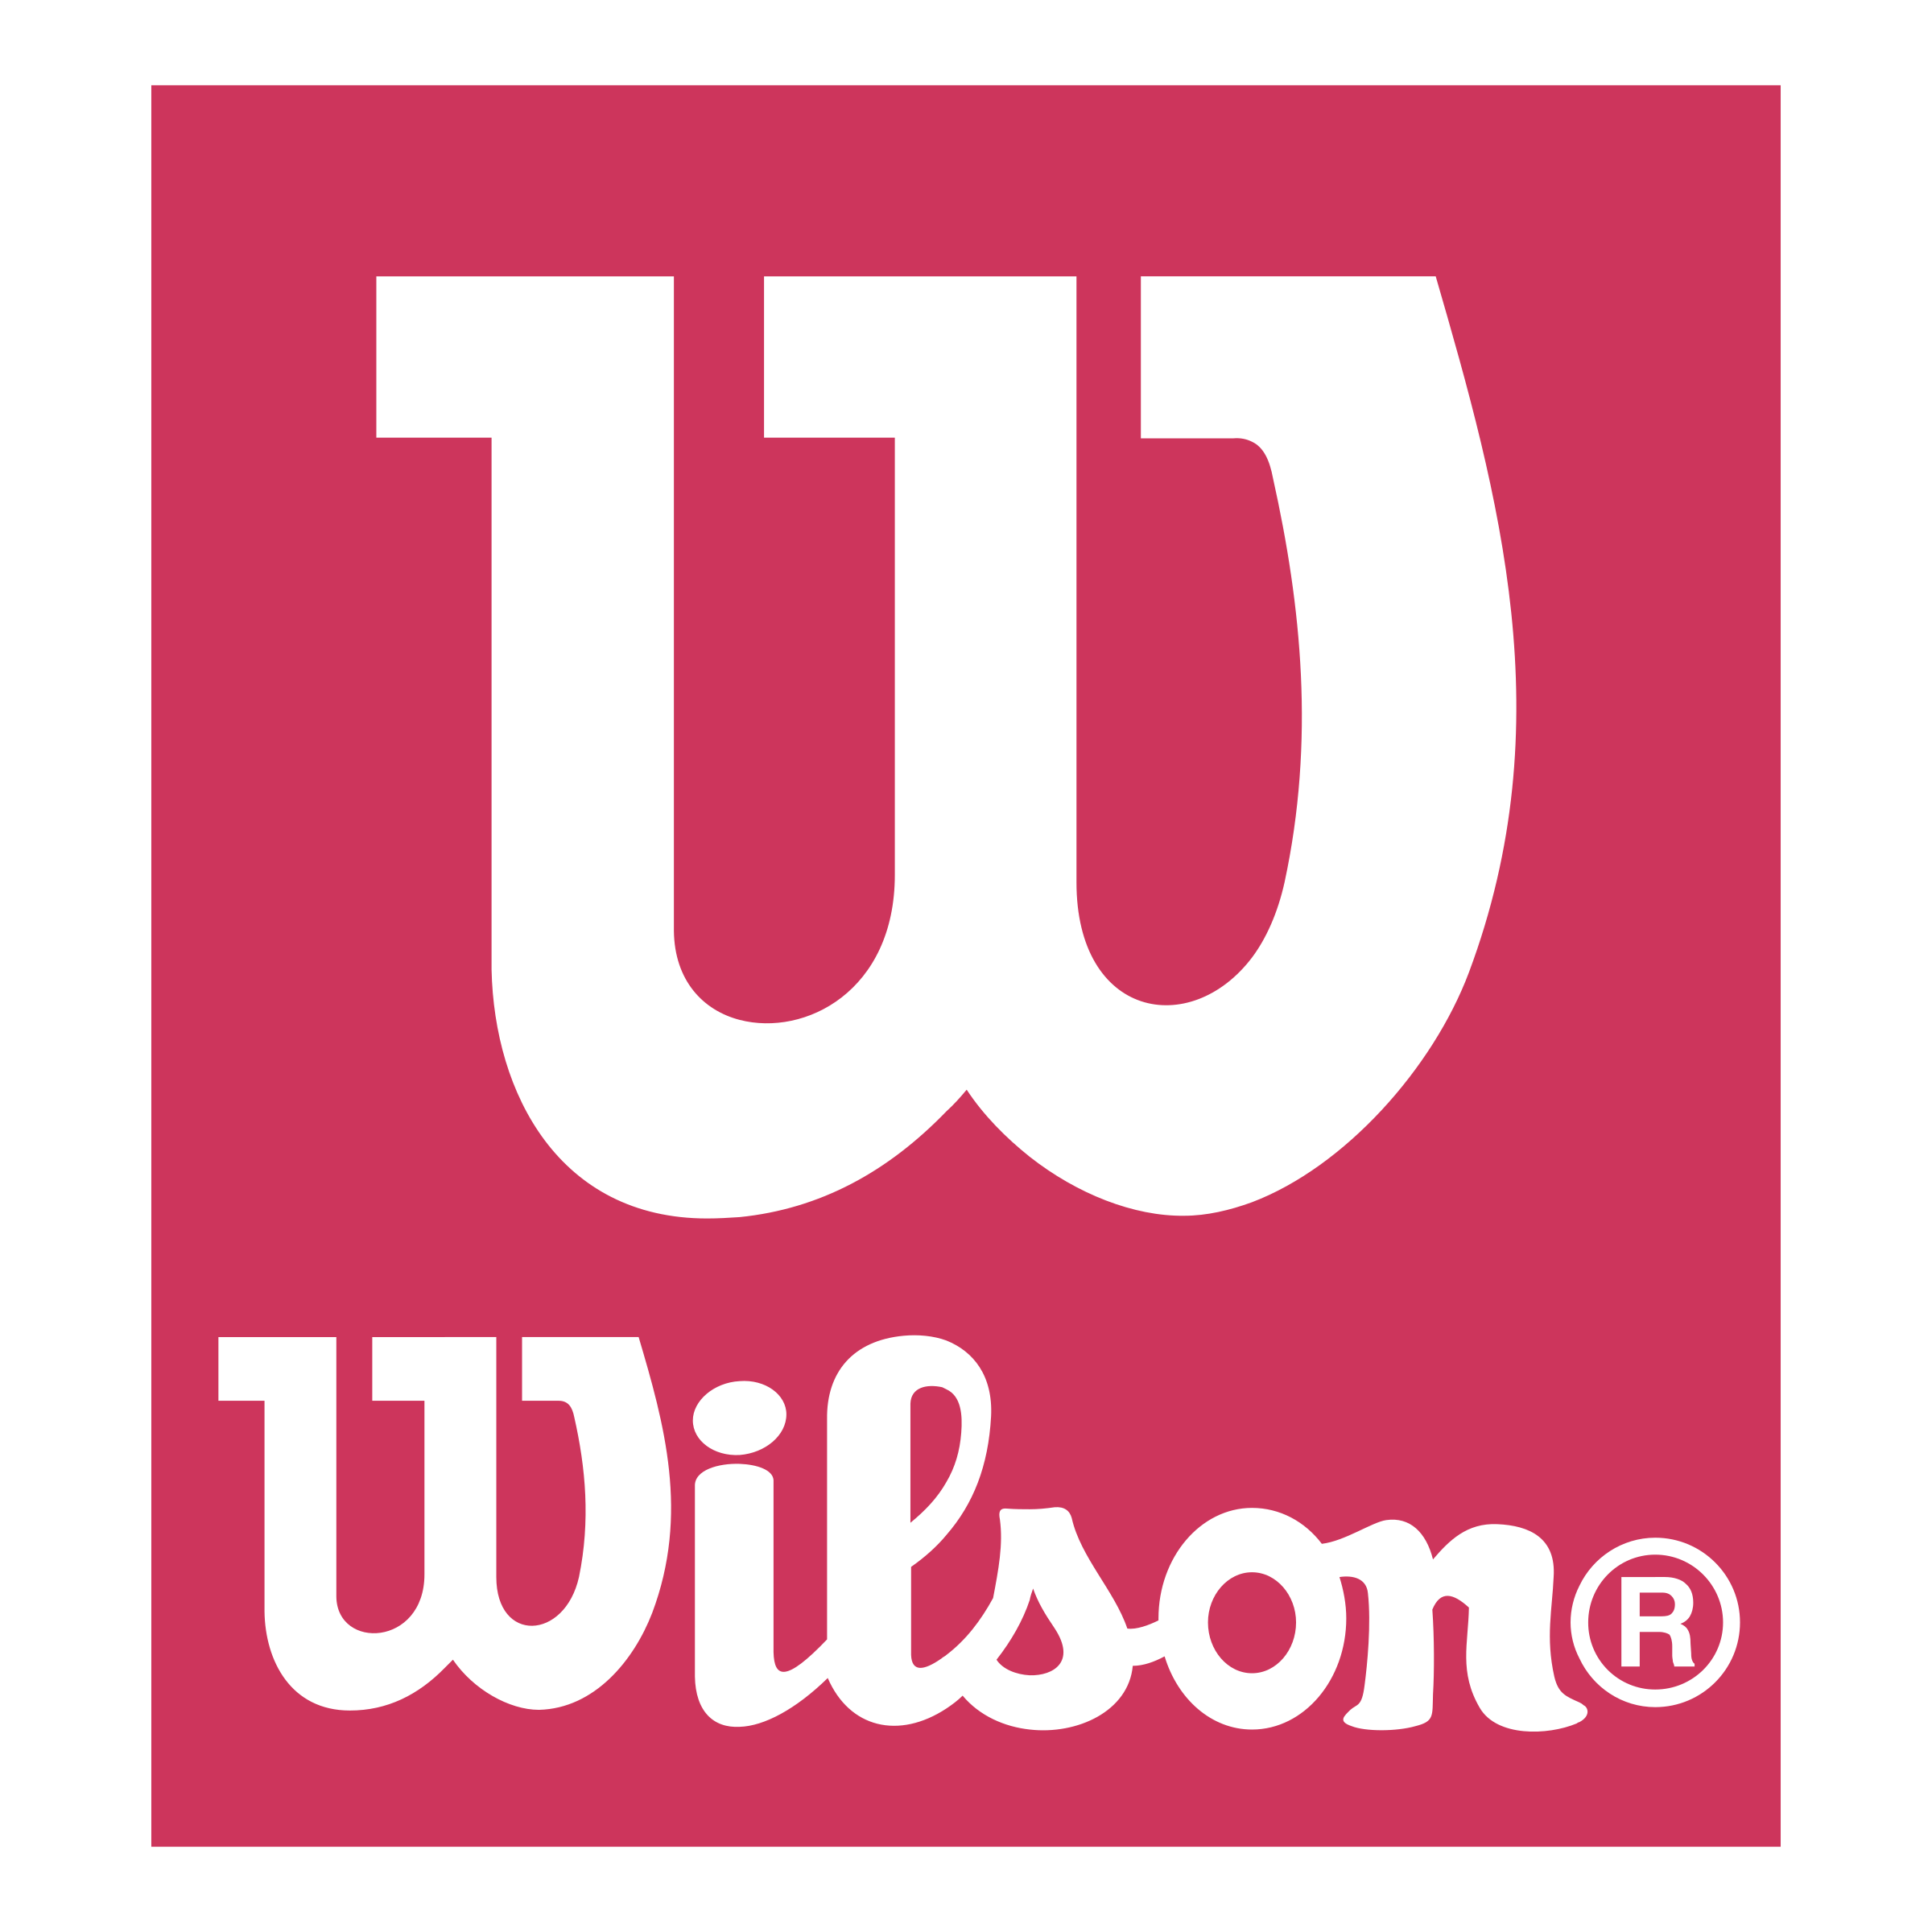 Wilson Logo PNG Transparent & SVG Vector.